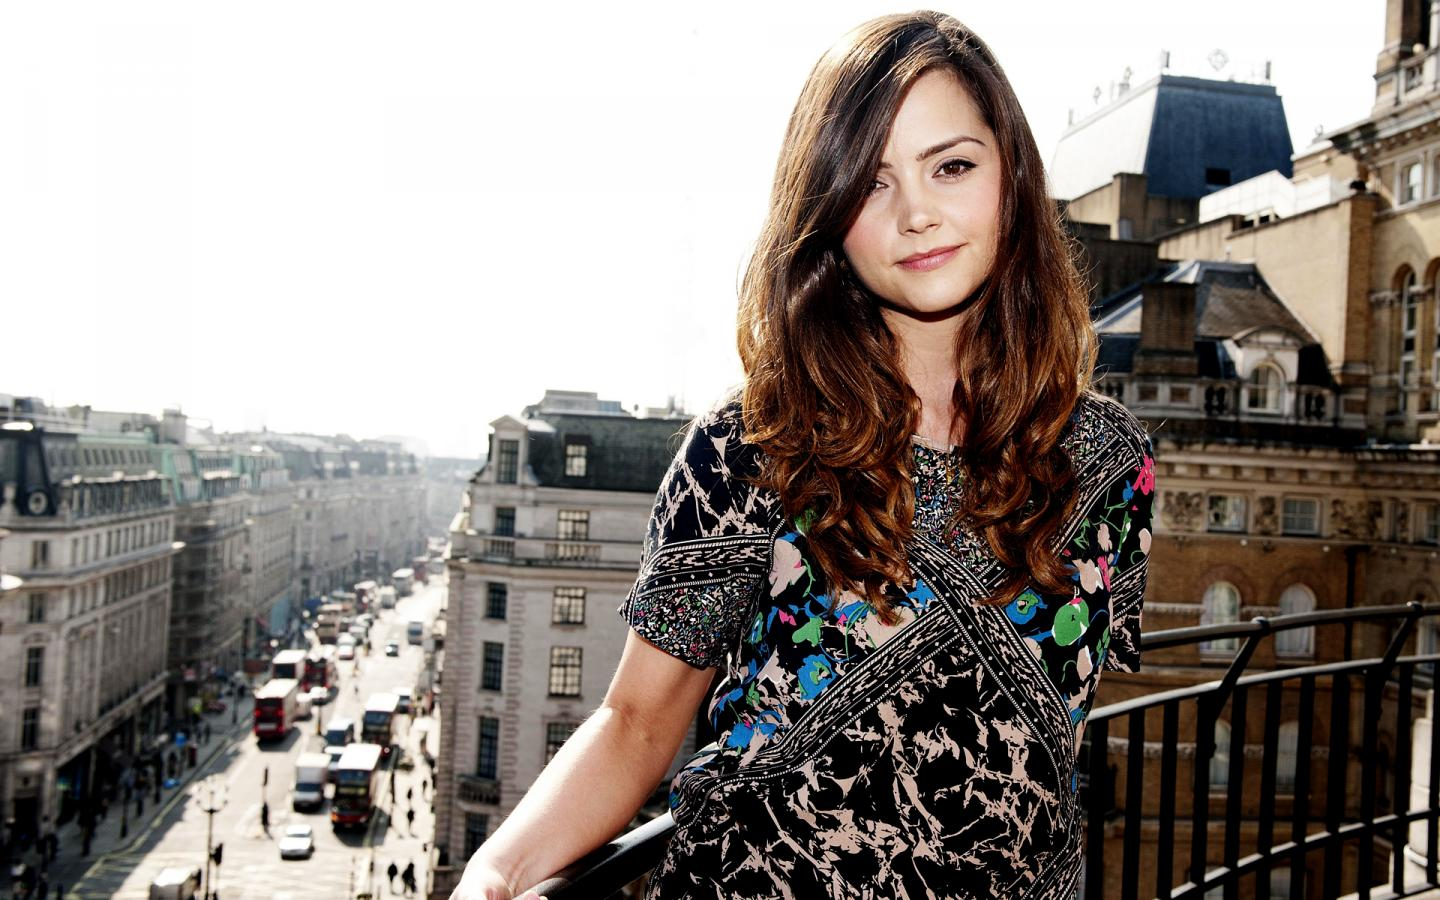 1440x900 - Jenna-Louise Coleman Wallpapers 29